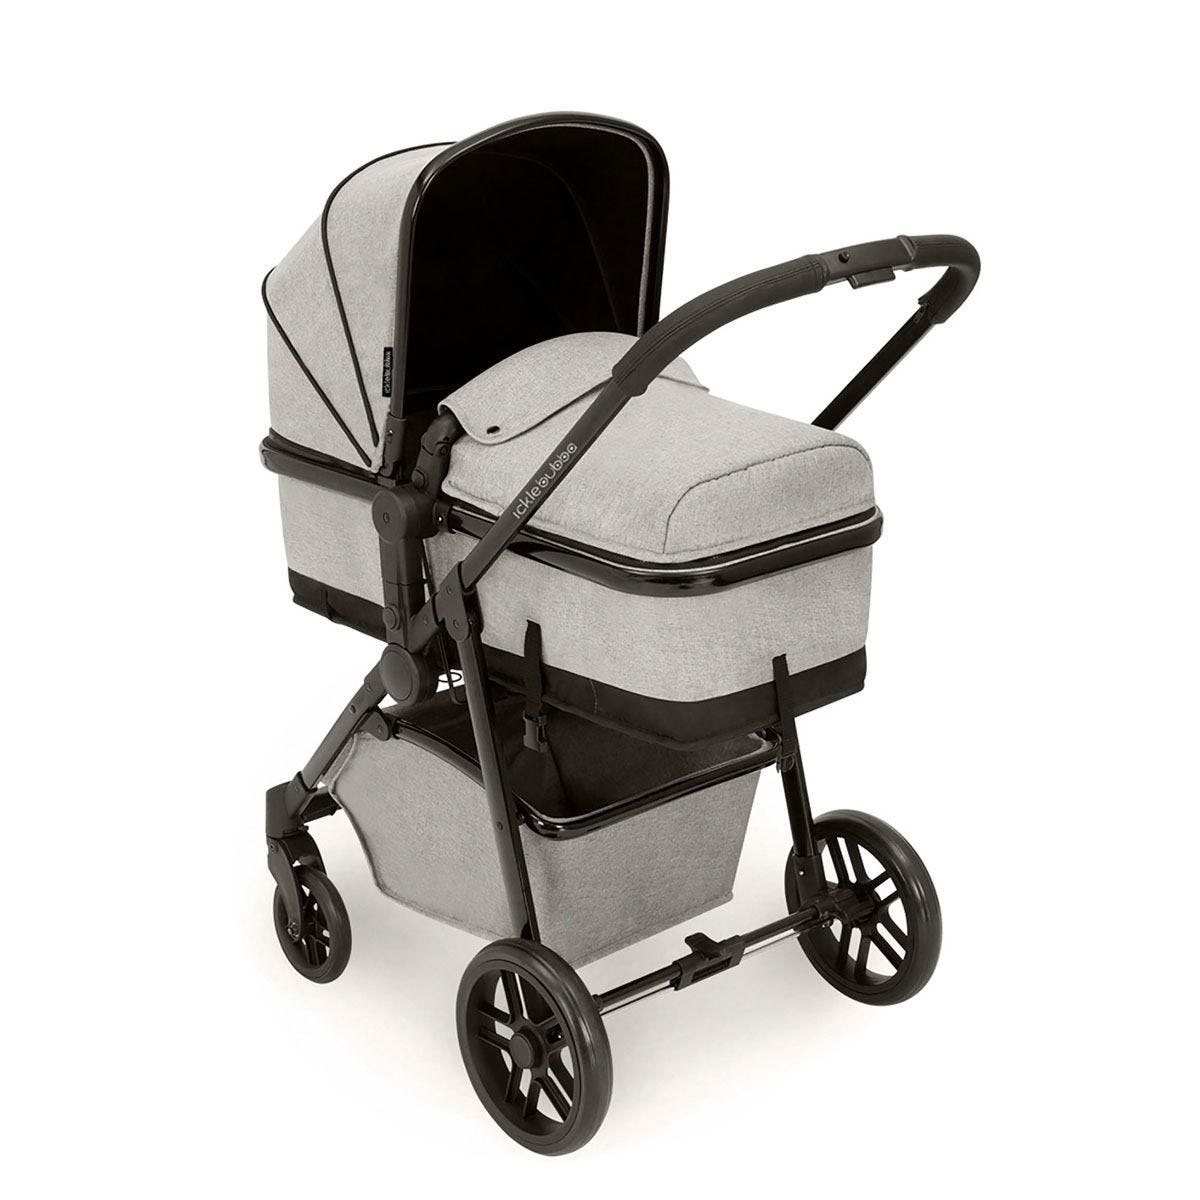 Ickle Bubba Moon 2 in 1 Pushchair - Silver Grey on Black with Black Handles